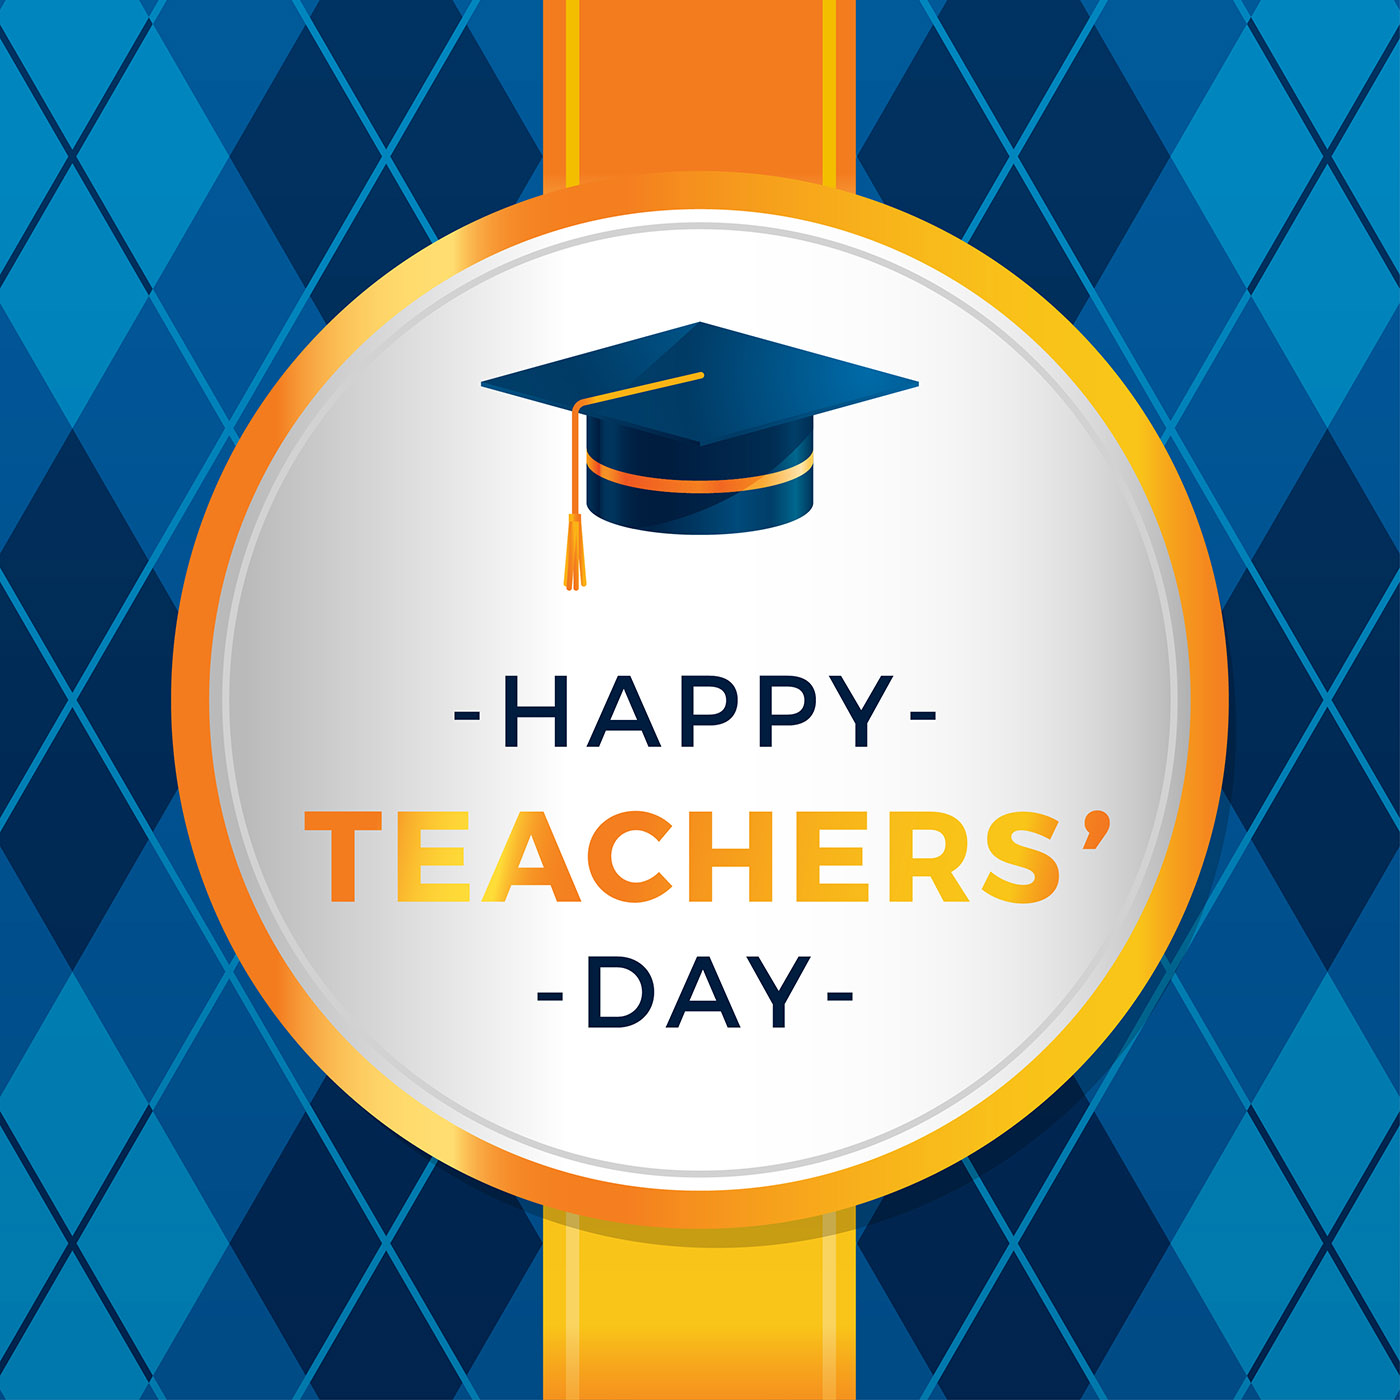 Teacher day greeting vector download free vector art stock teacher day greeting vector download free vector art stock graphics images m4hsunfo